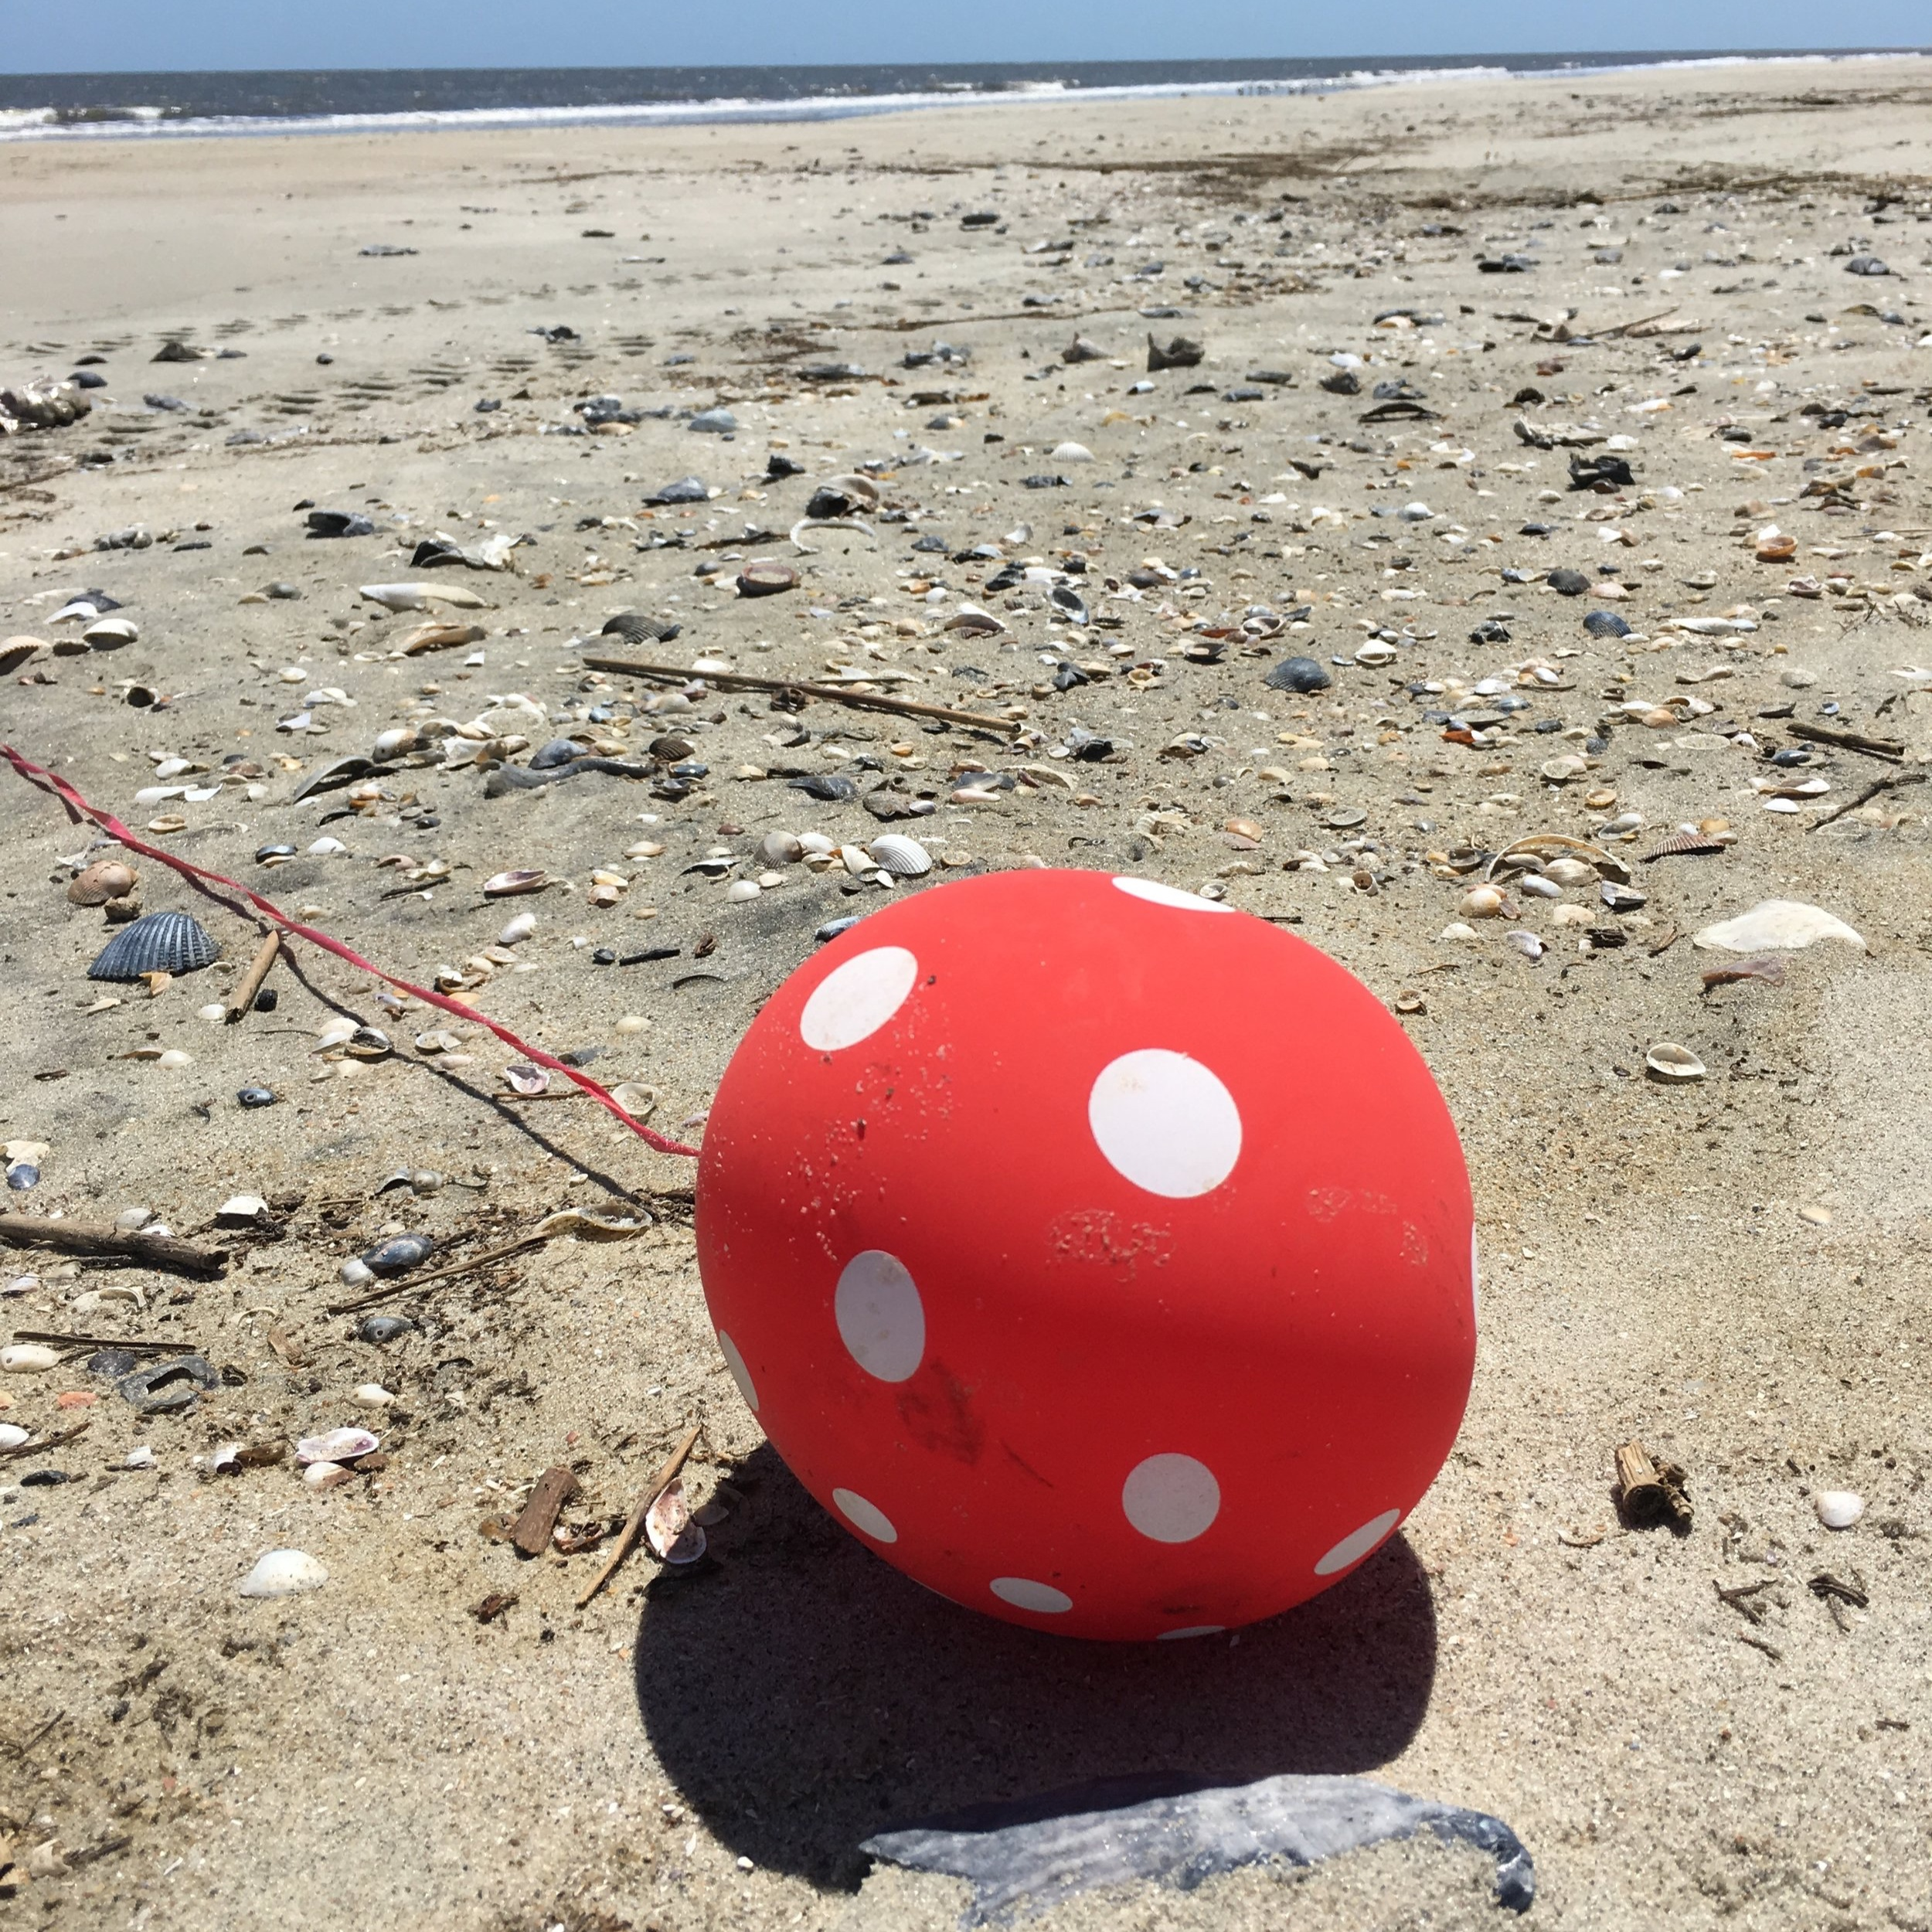 Consider Pollution-Free Alternatives to Balloon Releases